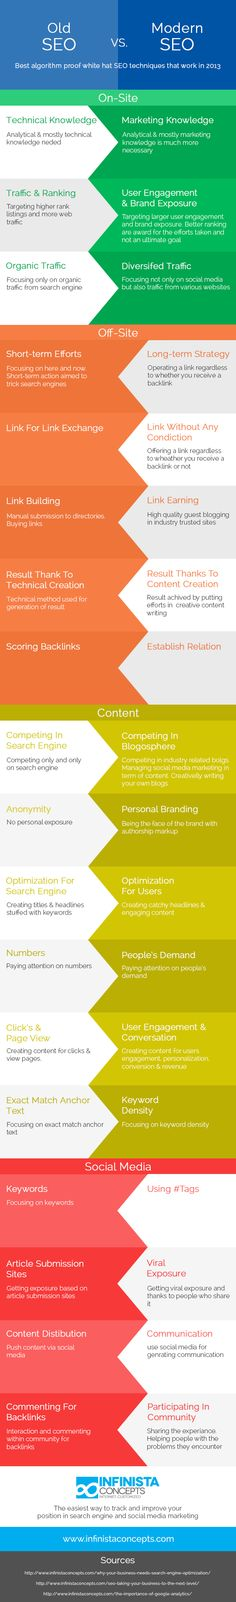 Old SEO vs Modern SEO, very informative info-graphic tells you about the latest changing trends in the SEO pattern and its techniques. For more visit us on http://www.infinistaconcepts.com/